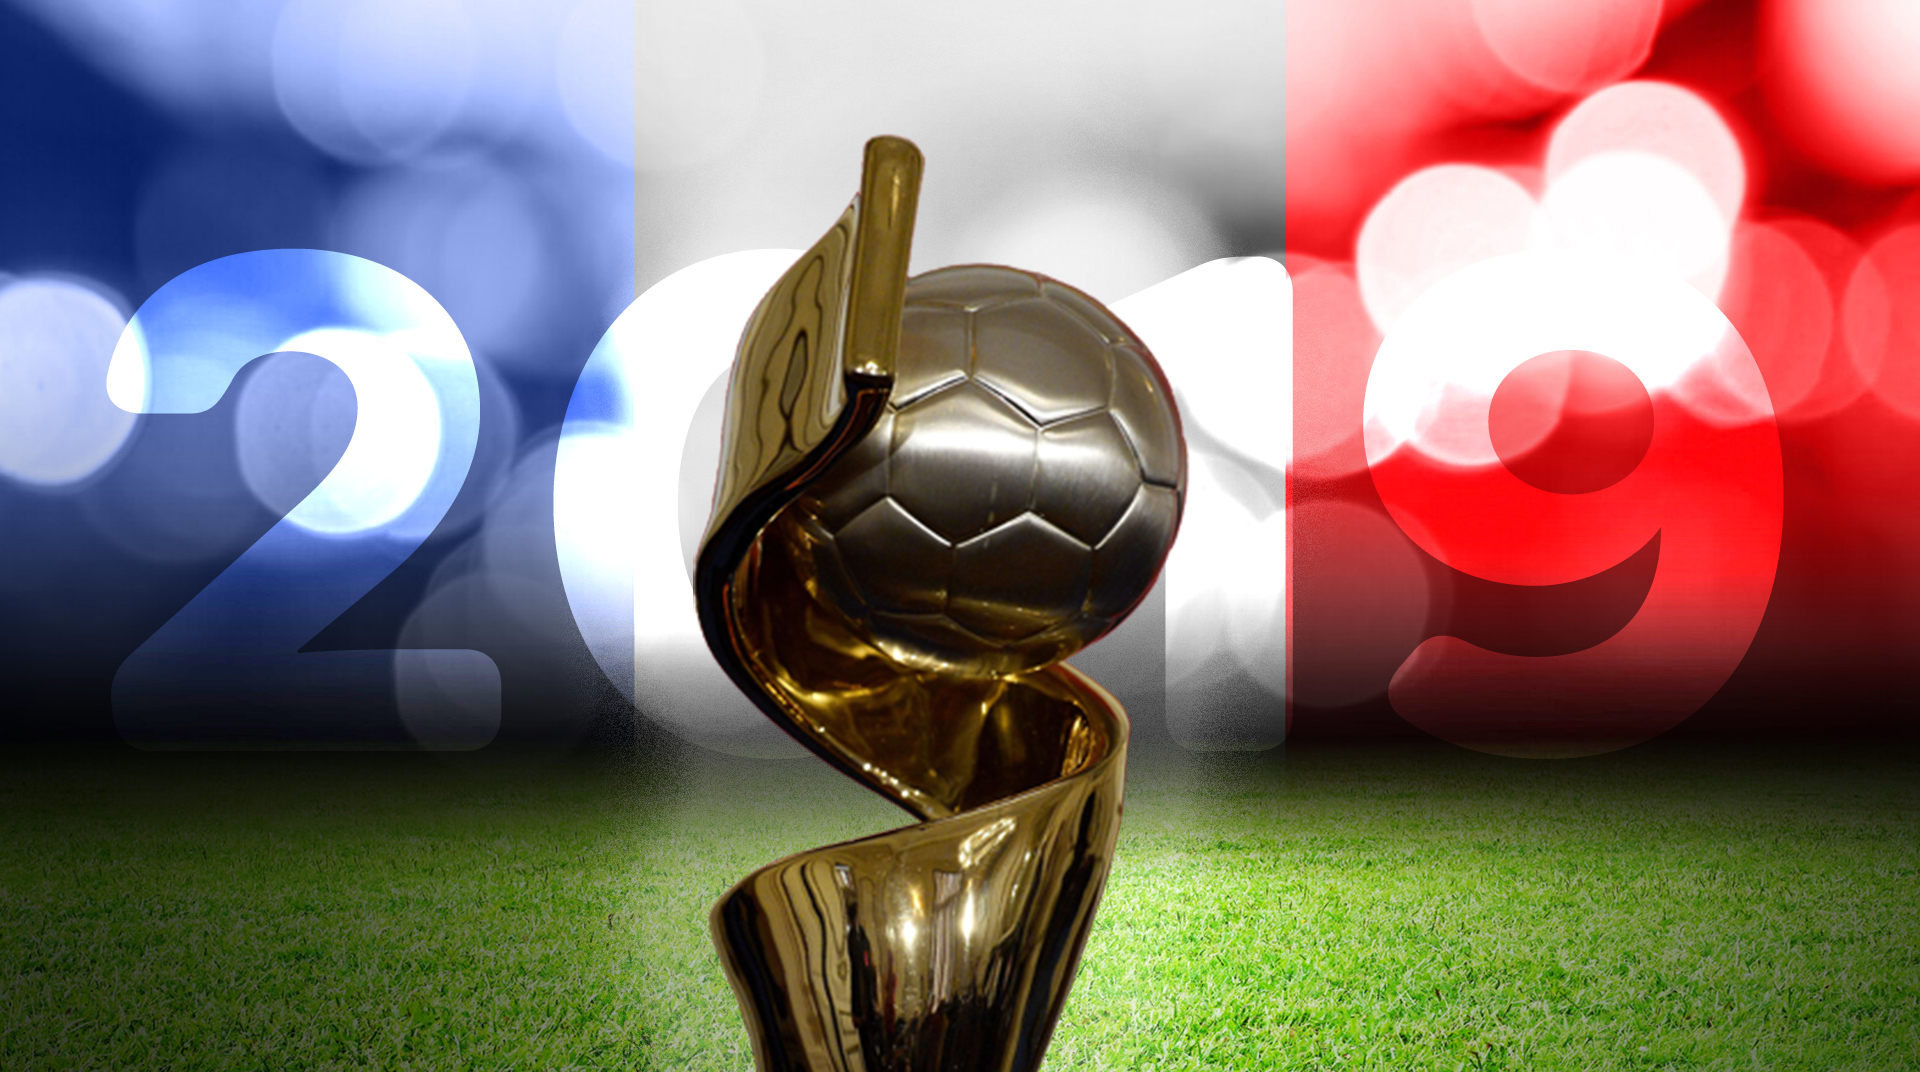 Women's World Cup France composite image with trophy